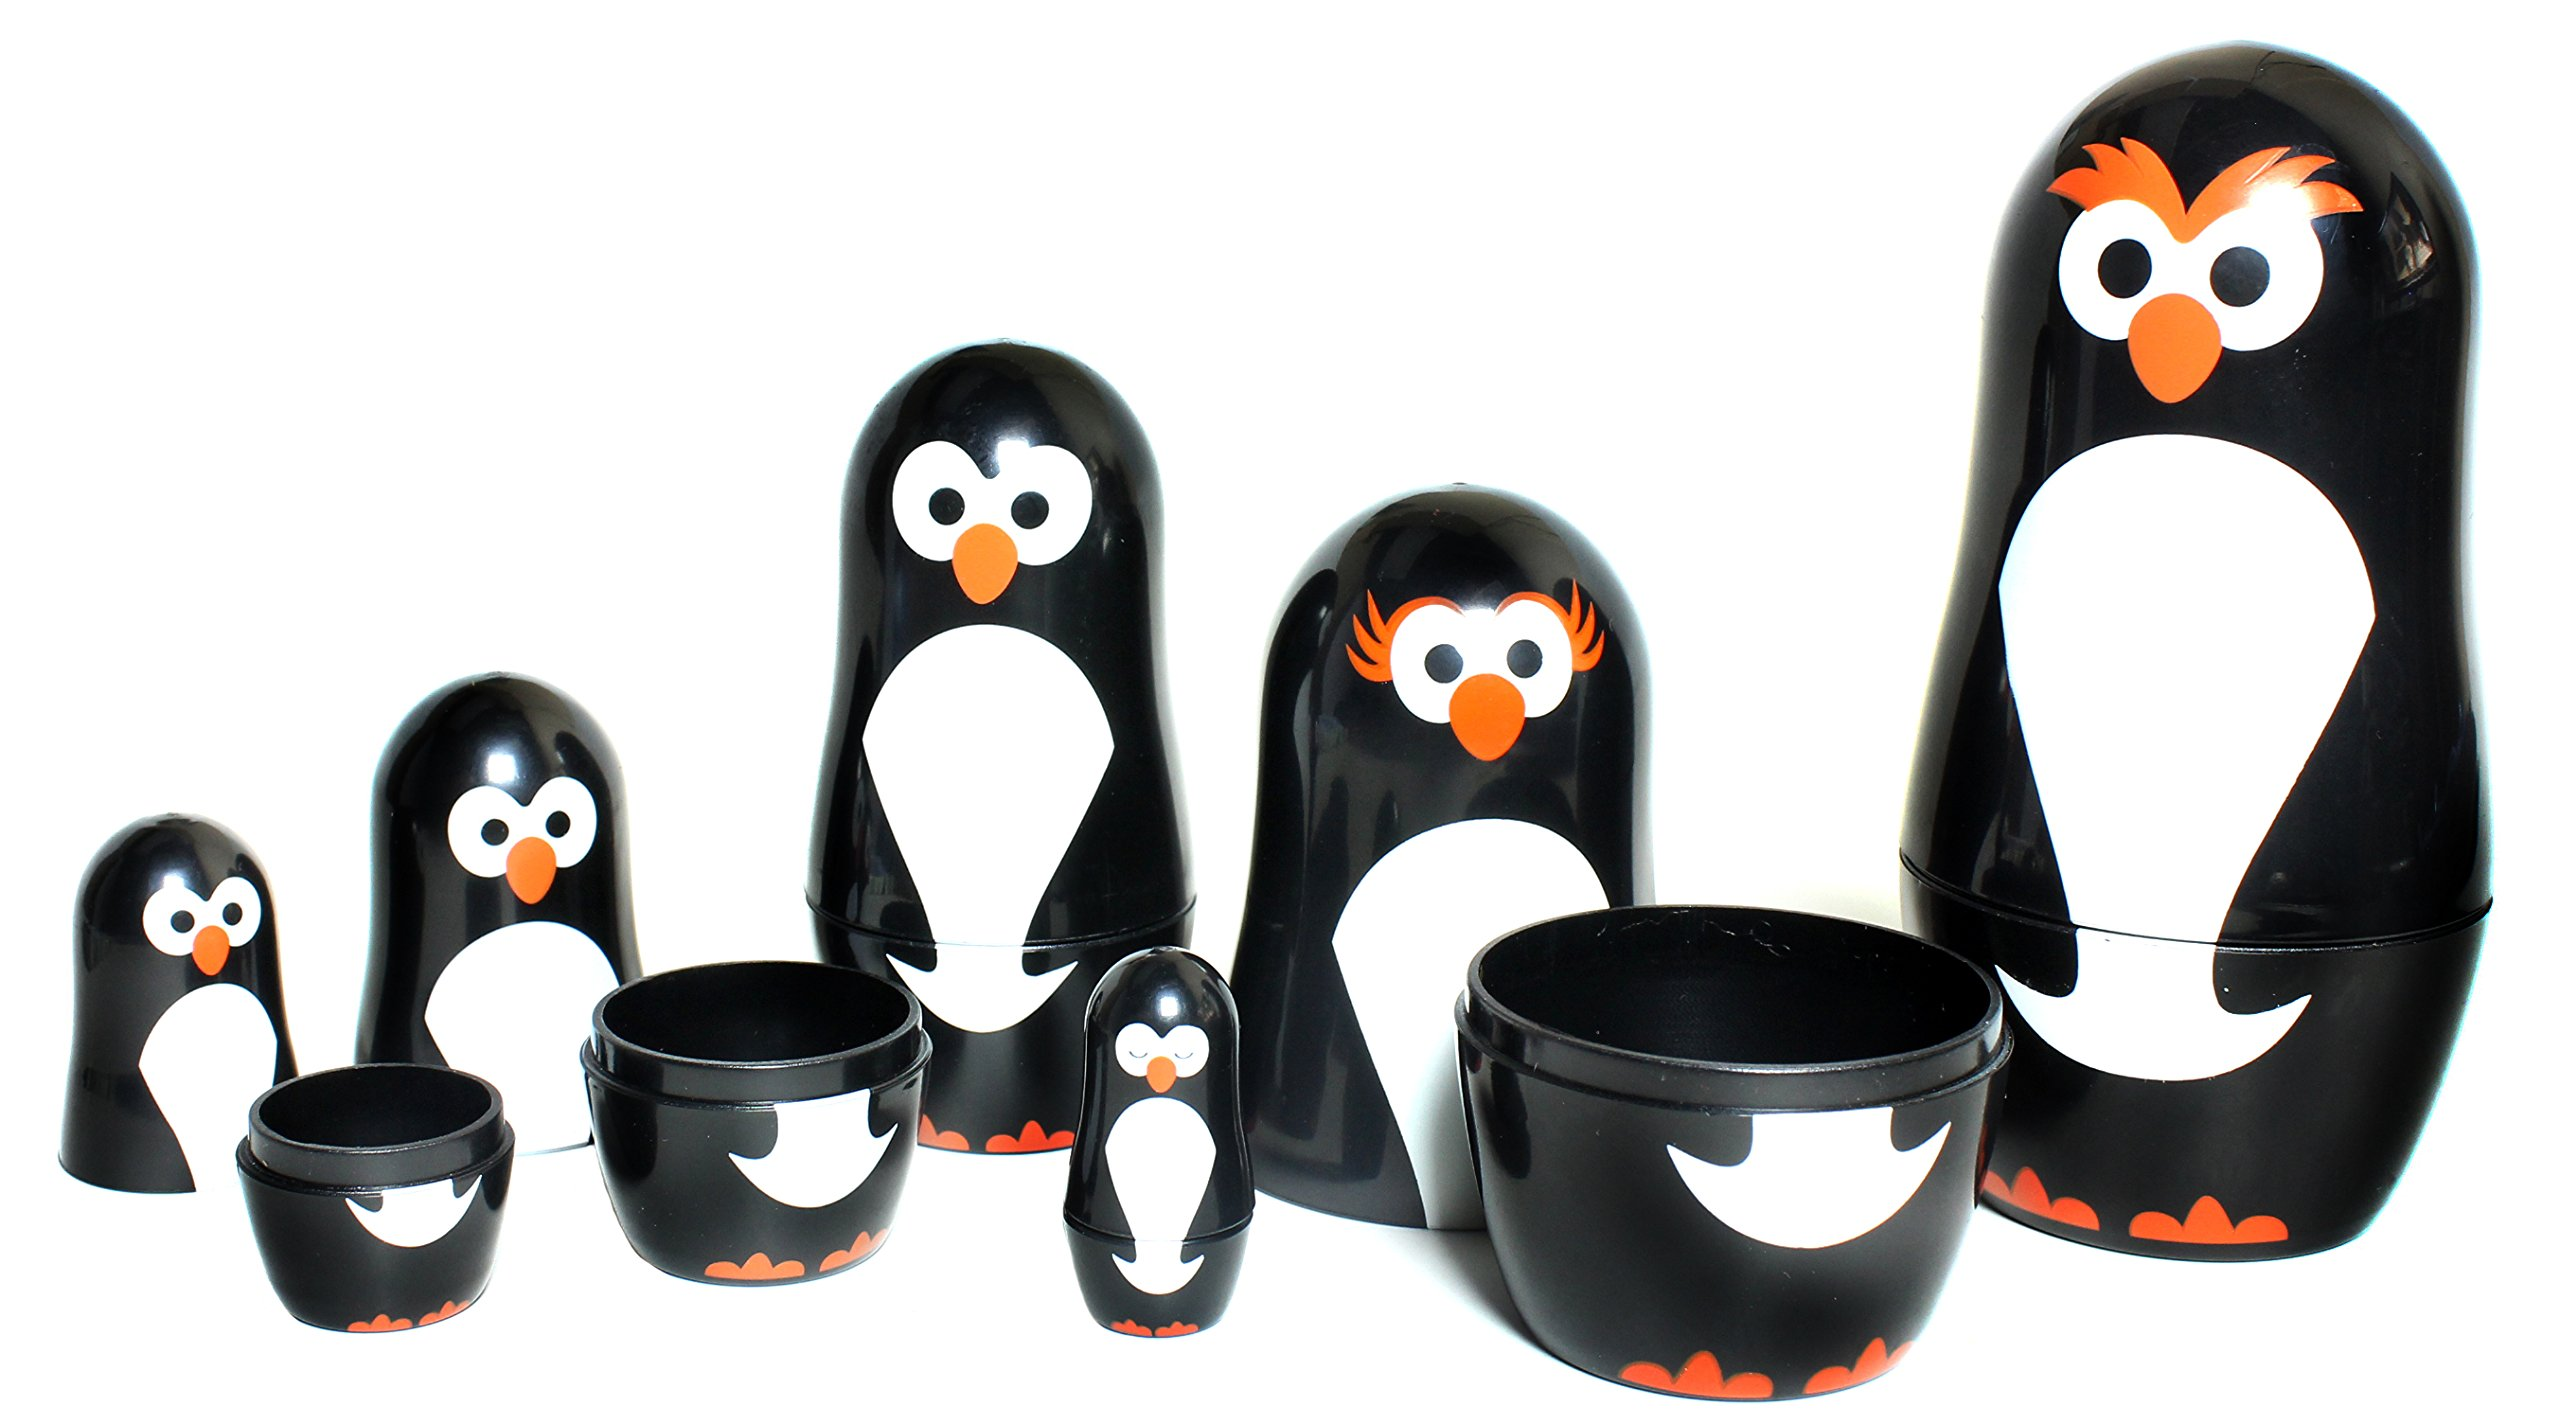 Penguin Nesting Dolls - 6 Matryoshka Penguins - All Hollow To Fit Inside Each Other by Play Visions